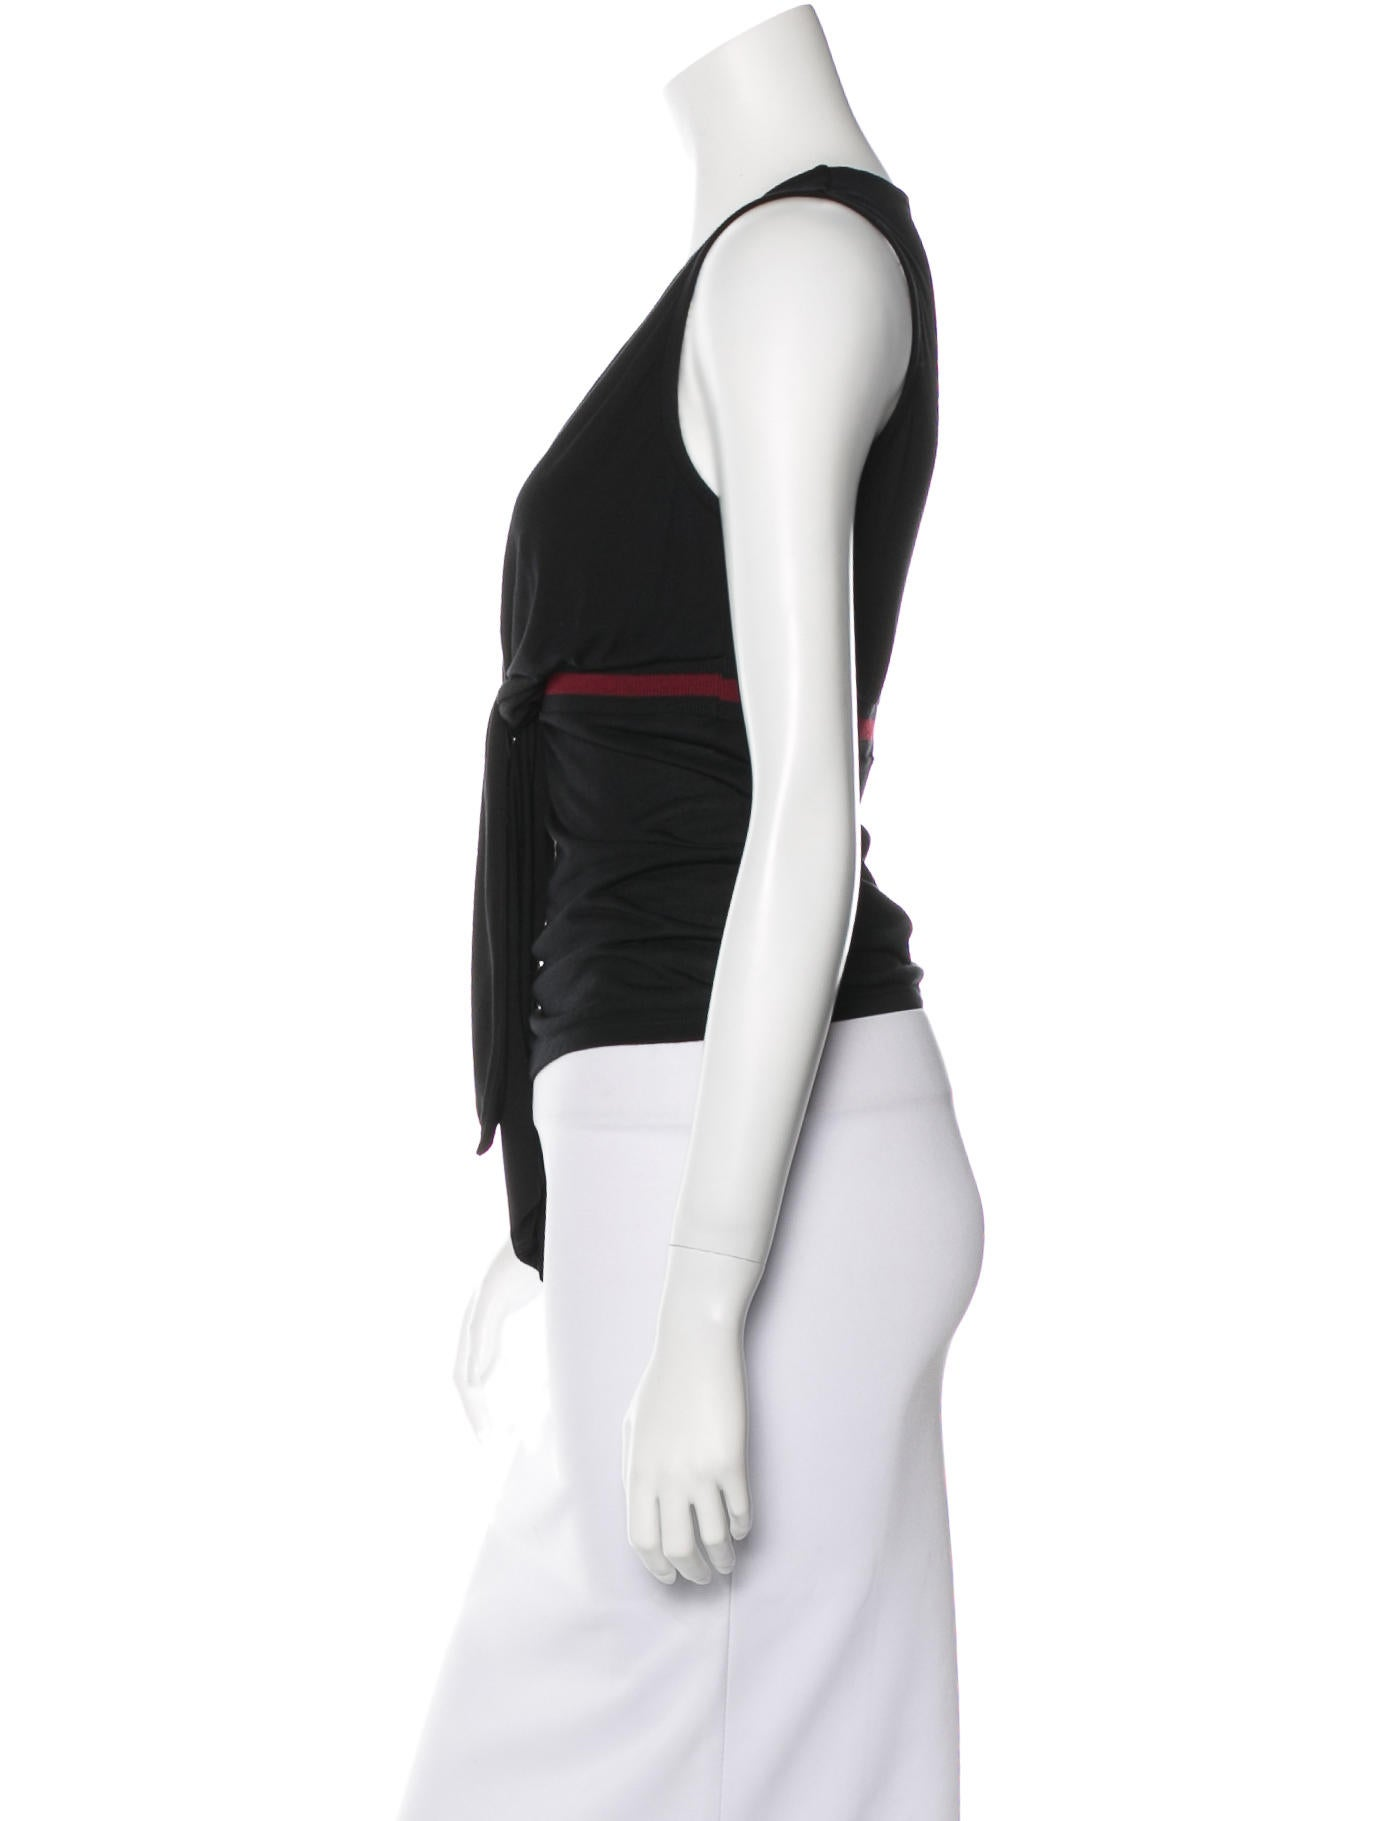 Gucci Sleeveless Tie Top - Clothing - GUC107090 | The RealReal